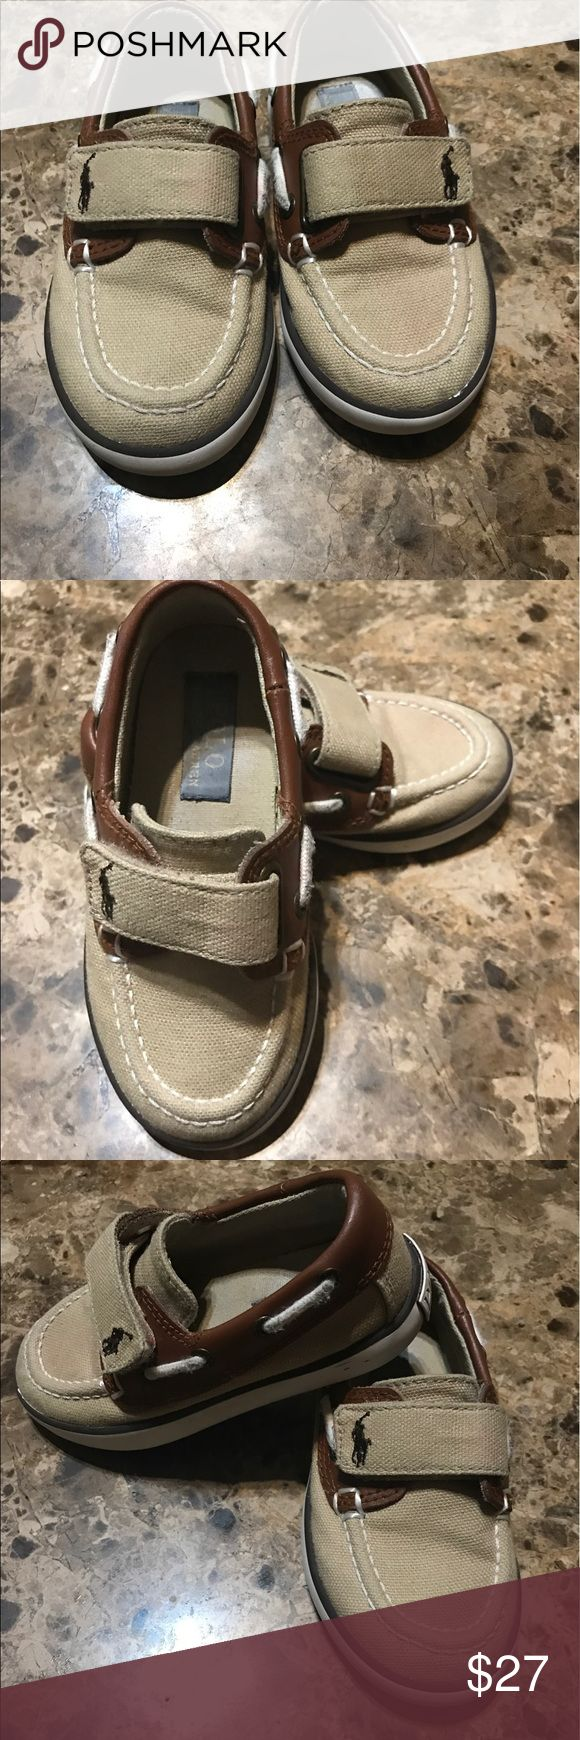 Toddler polo shoes Used good condition size 7 toddler Shoes Sneakers